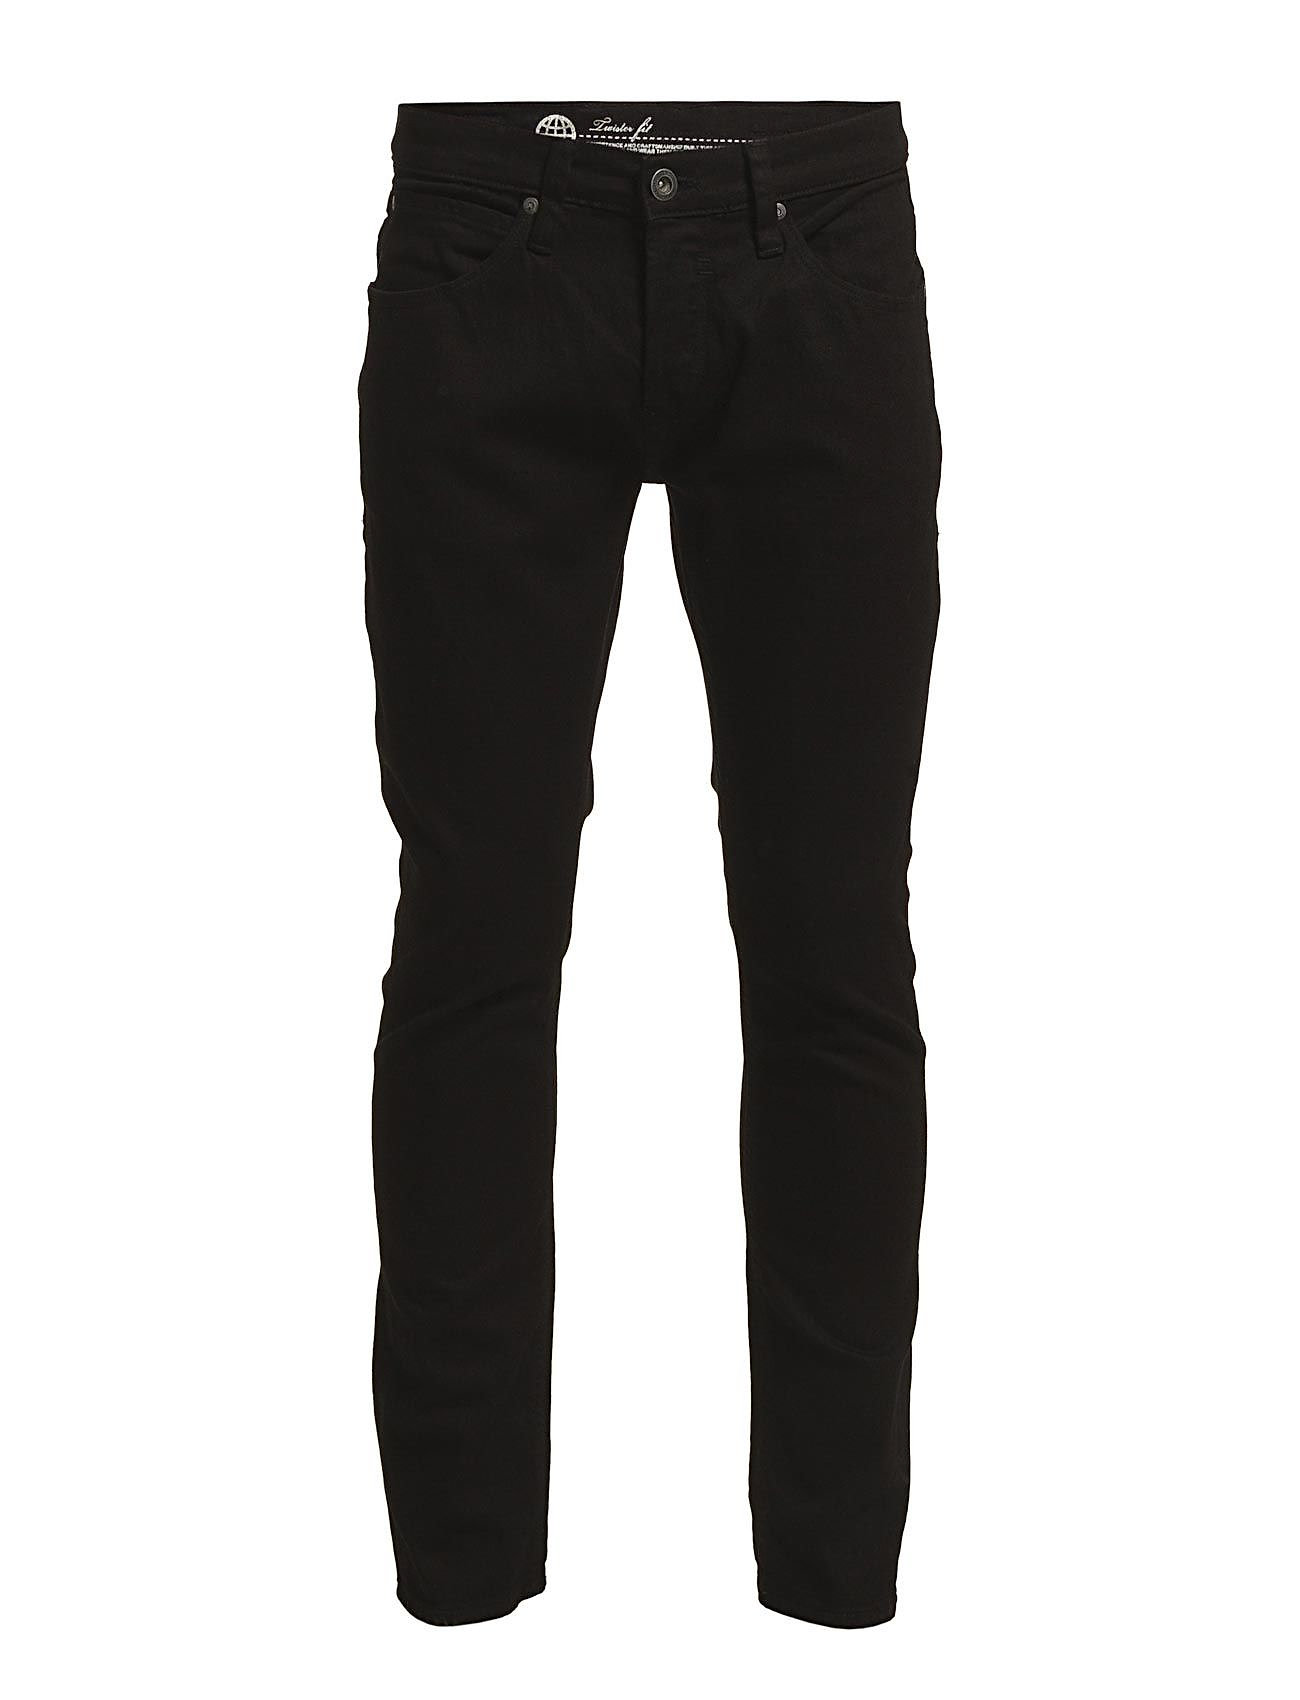 Blend Jeans - NOOS Twister fit - BLACK